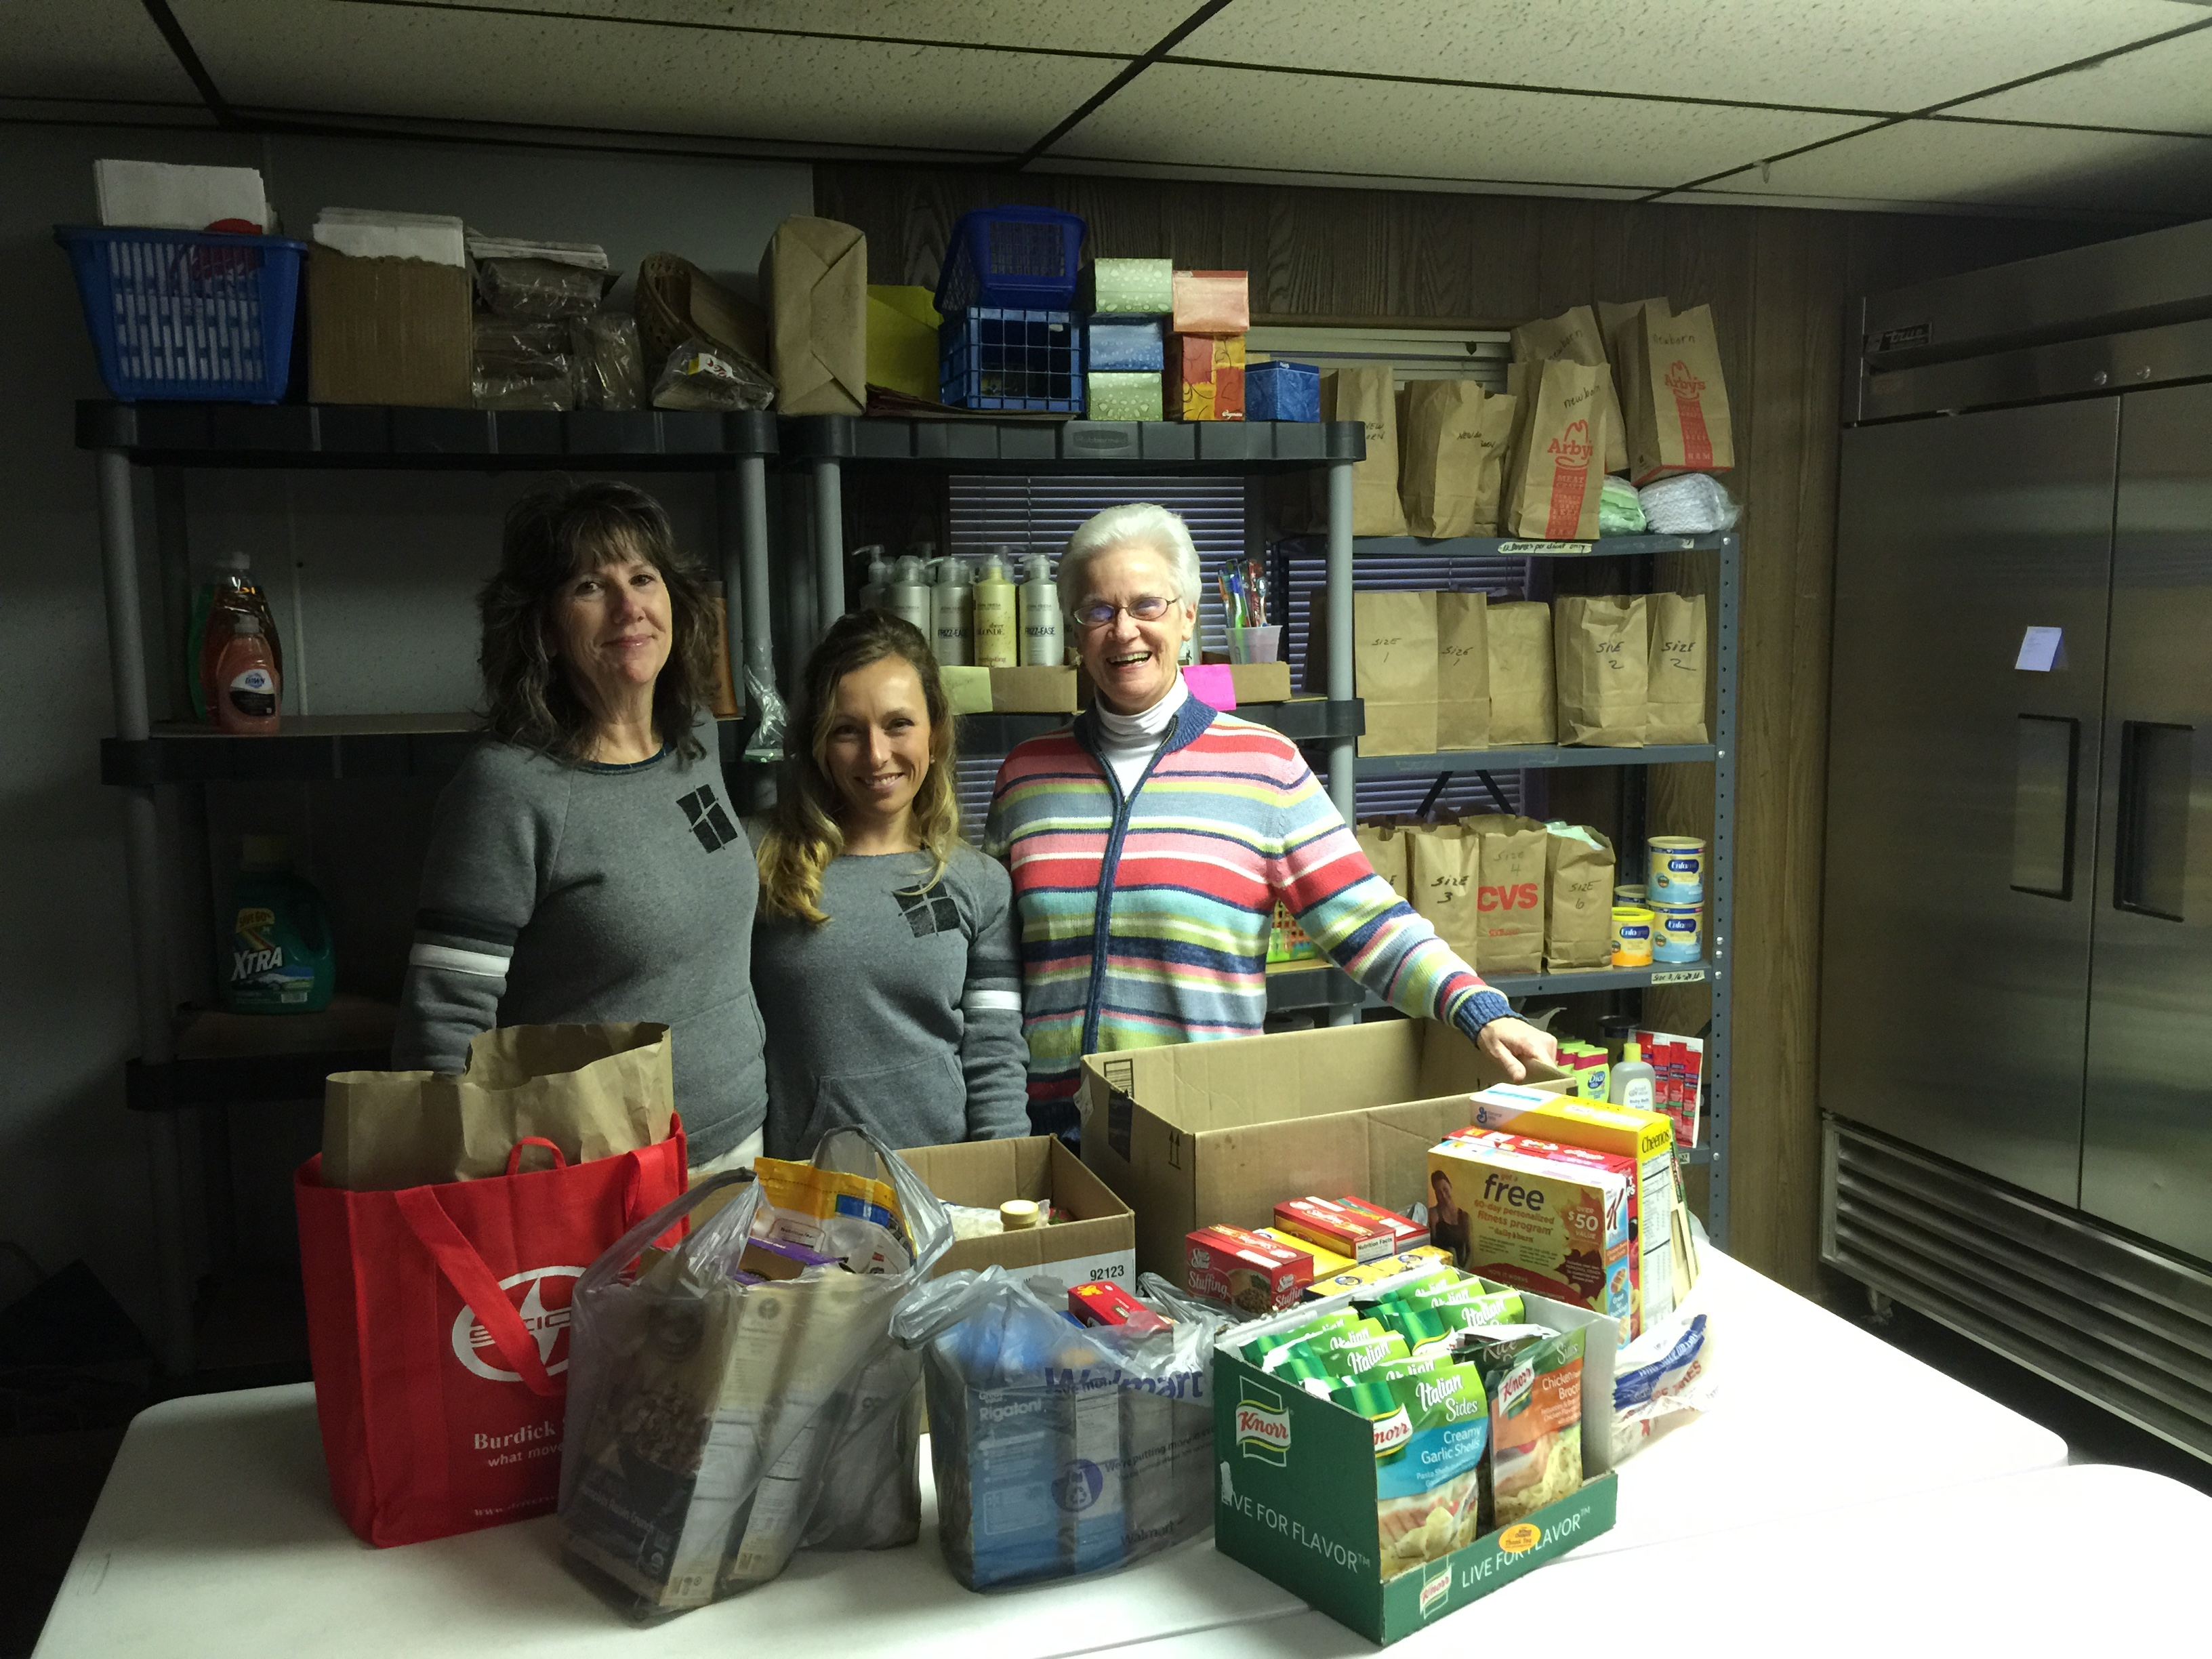 TCRM receives 'Planksgiving' gift from Four Seasons Fitness